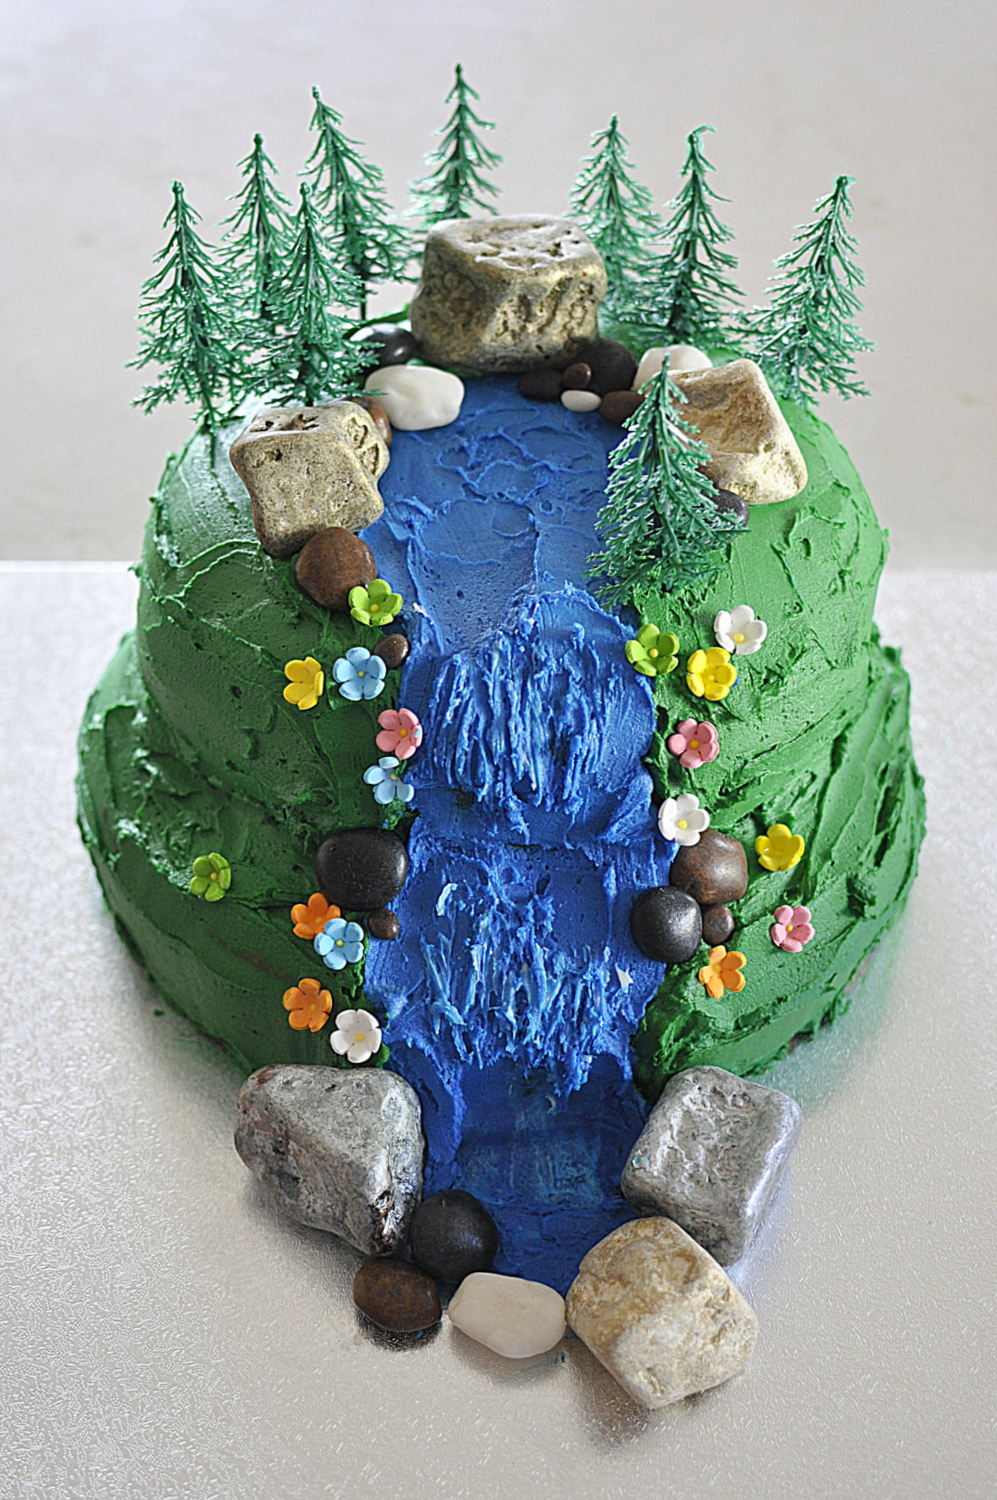 Waterfall scene cake - it's easier than you think!